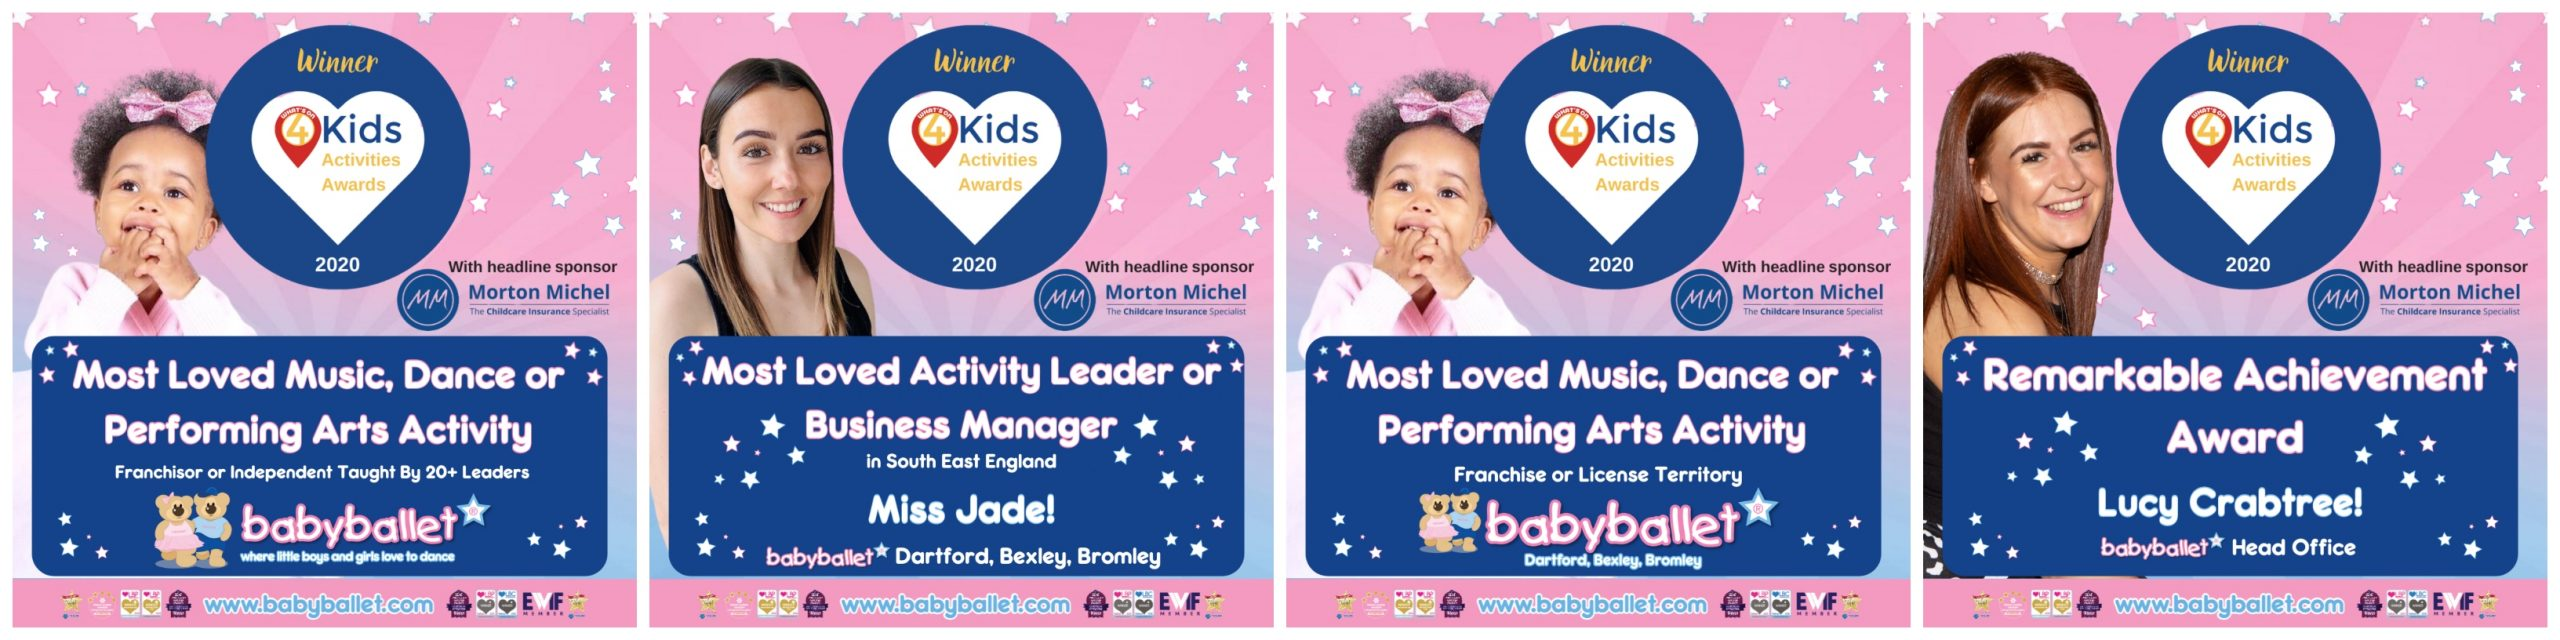 What's On 4 Kids Activities Awards 2020 babyballet Winners